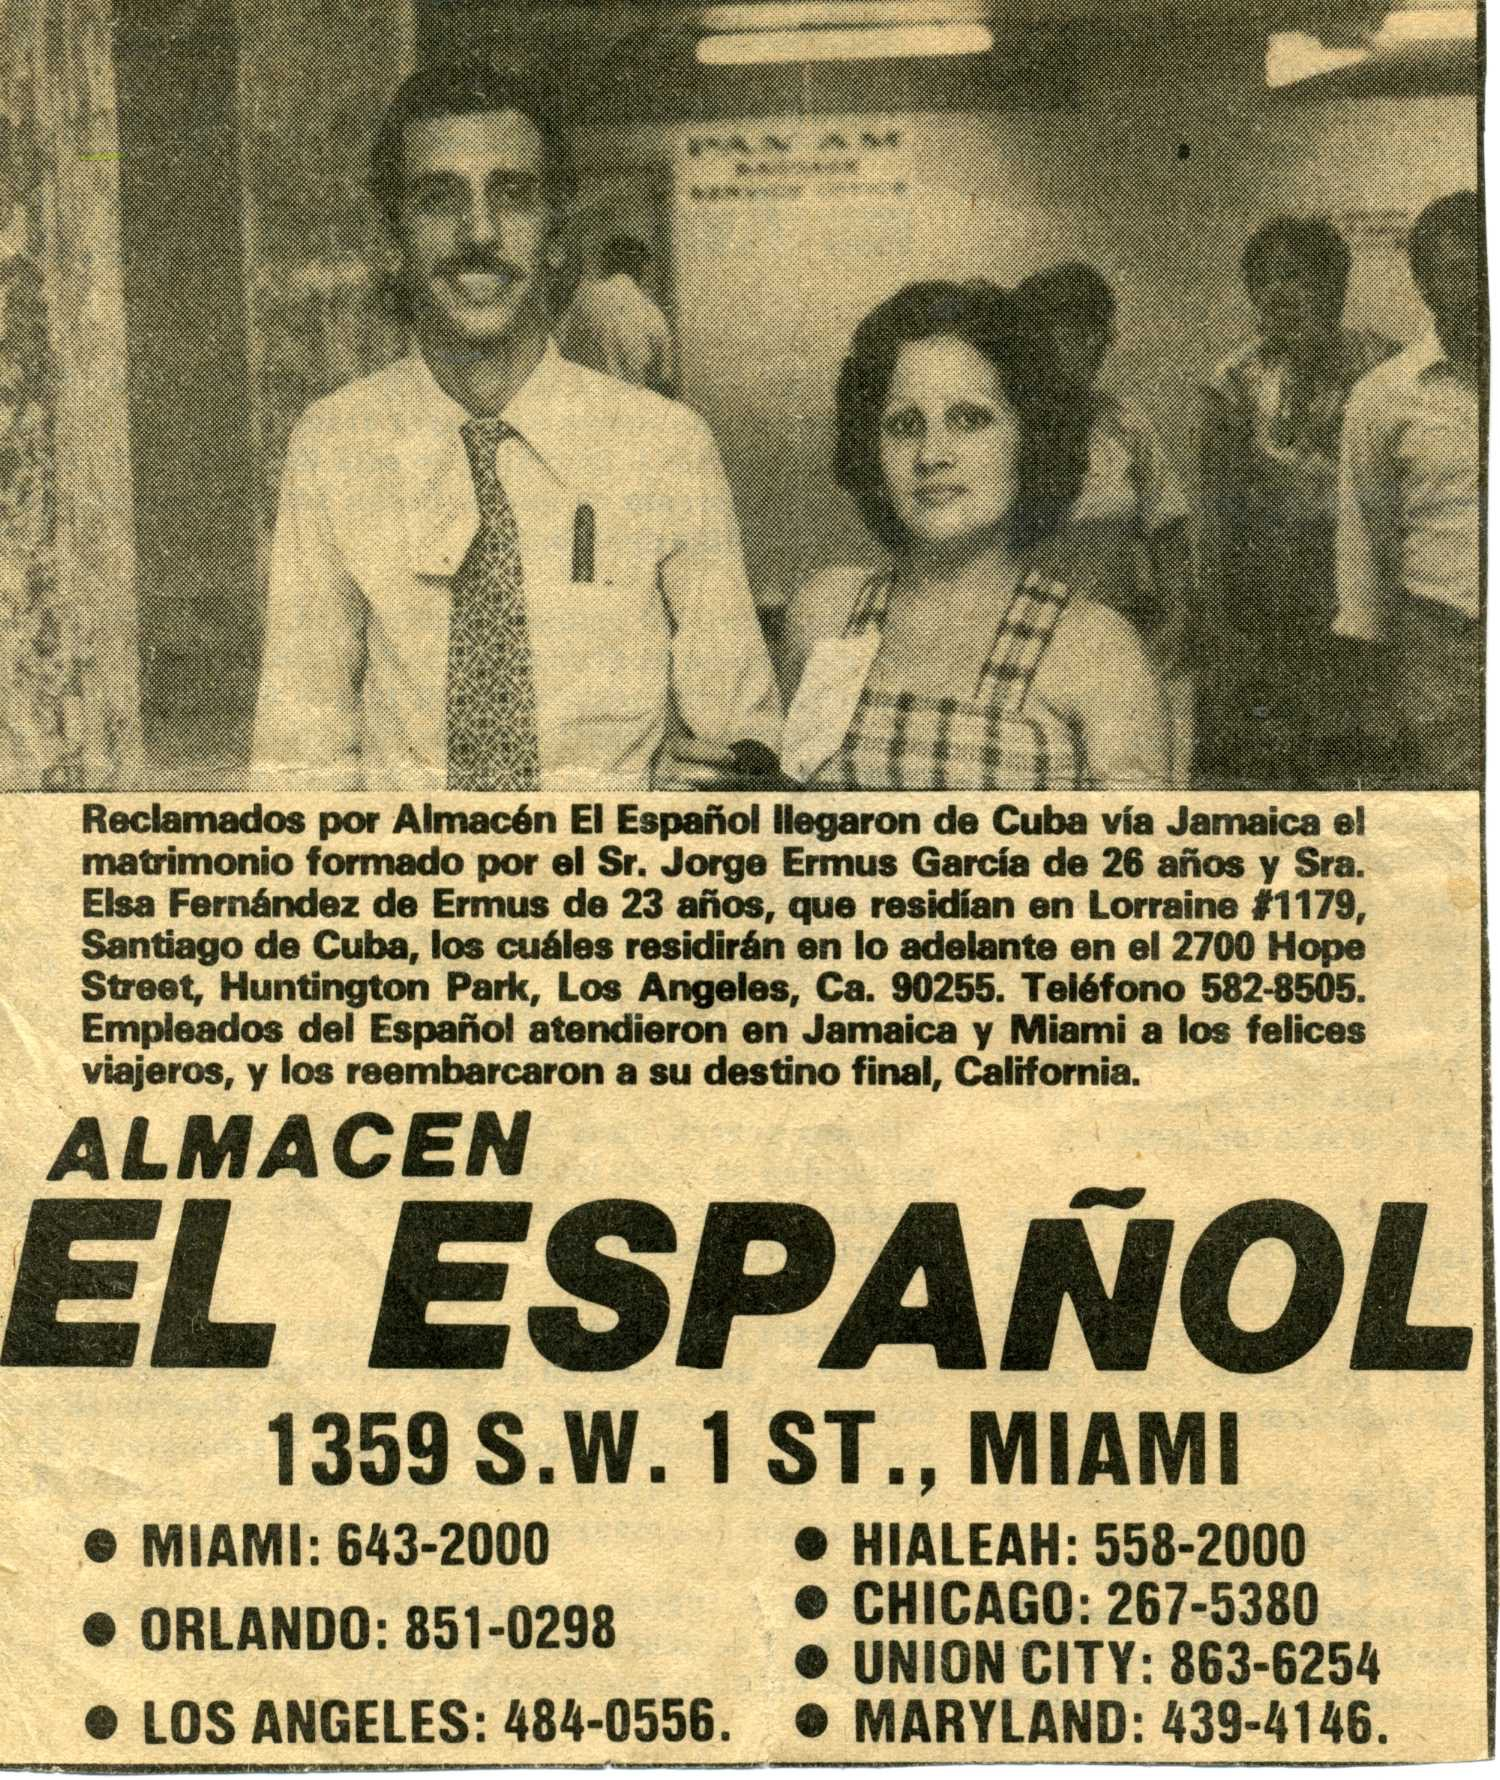 Newspaper add featuring a picture of Jorge and Elsa Ermus at an airport.